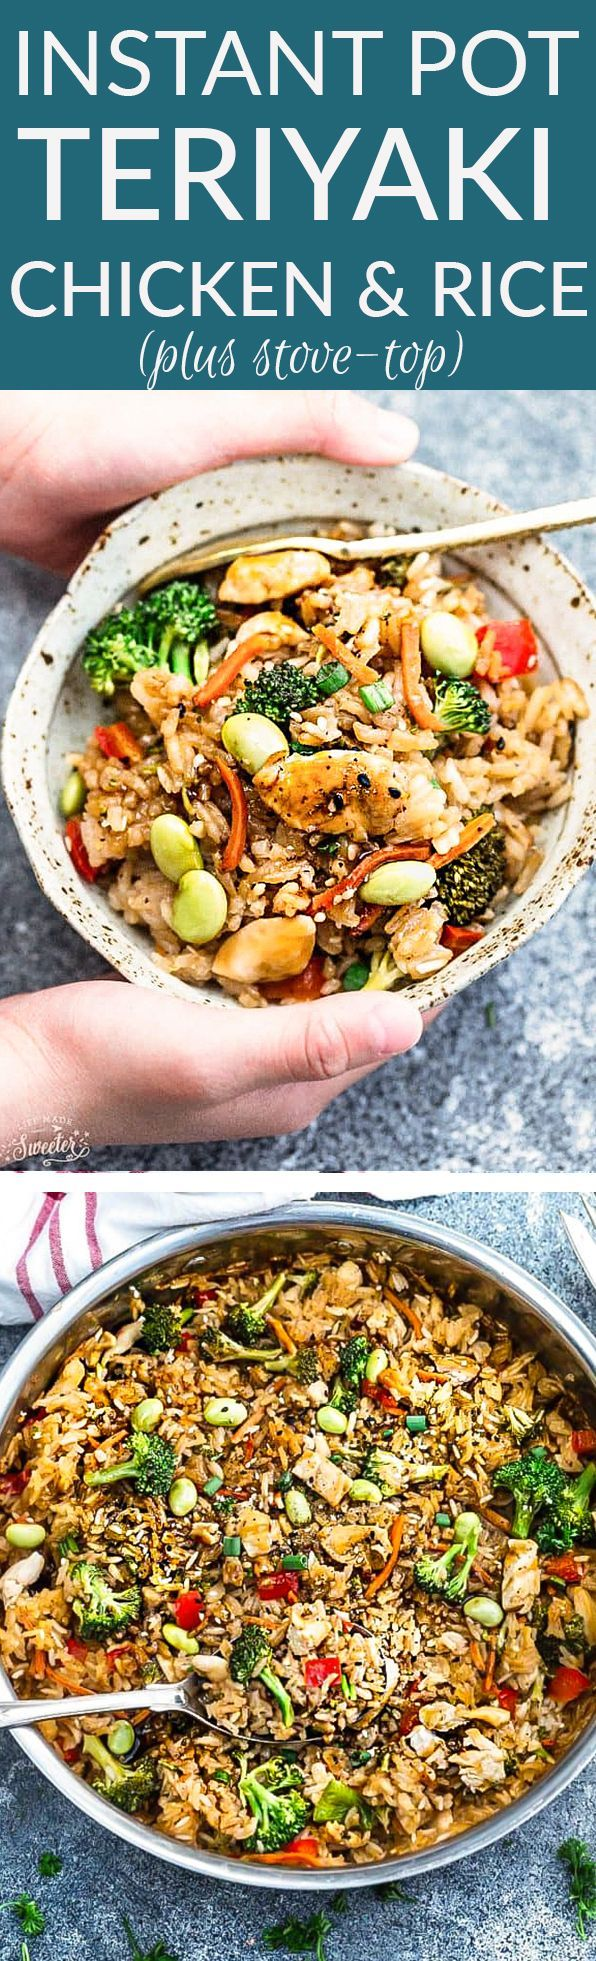 Instant Pot Teriyaki Rice with Chicken and Vegetables is the perfect easy weeknight meal. Best of all, everything cooks up in just ONE pan {plus bonus Instant Pot pressure cooker instructions} and has all the flavors of your favorite takeout restaurant dish. A great Sunday meal prep recipe for your work or school lunchbox or lunch bowl and way better than takeout!